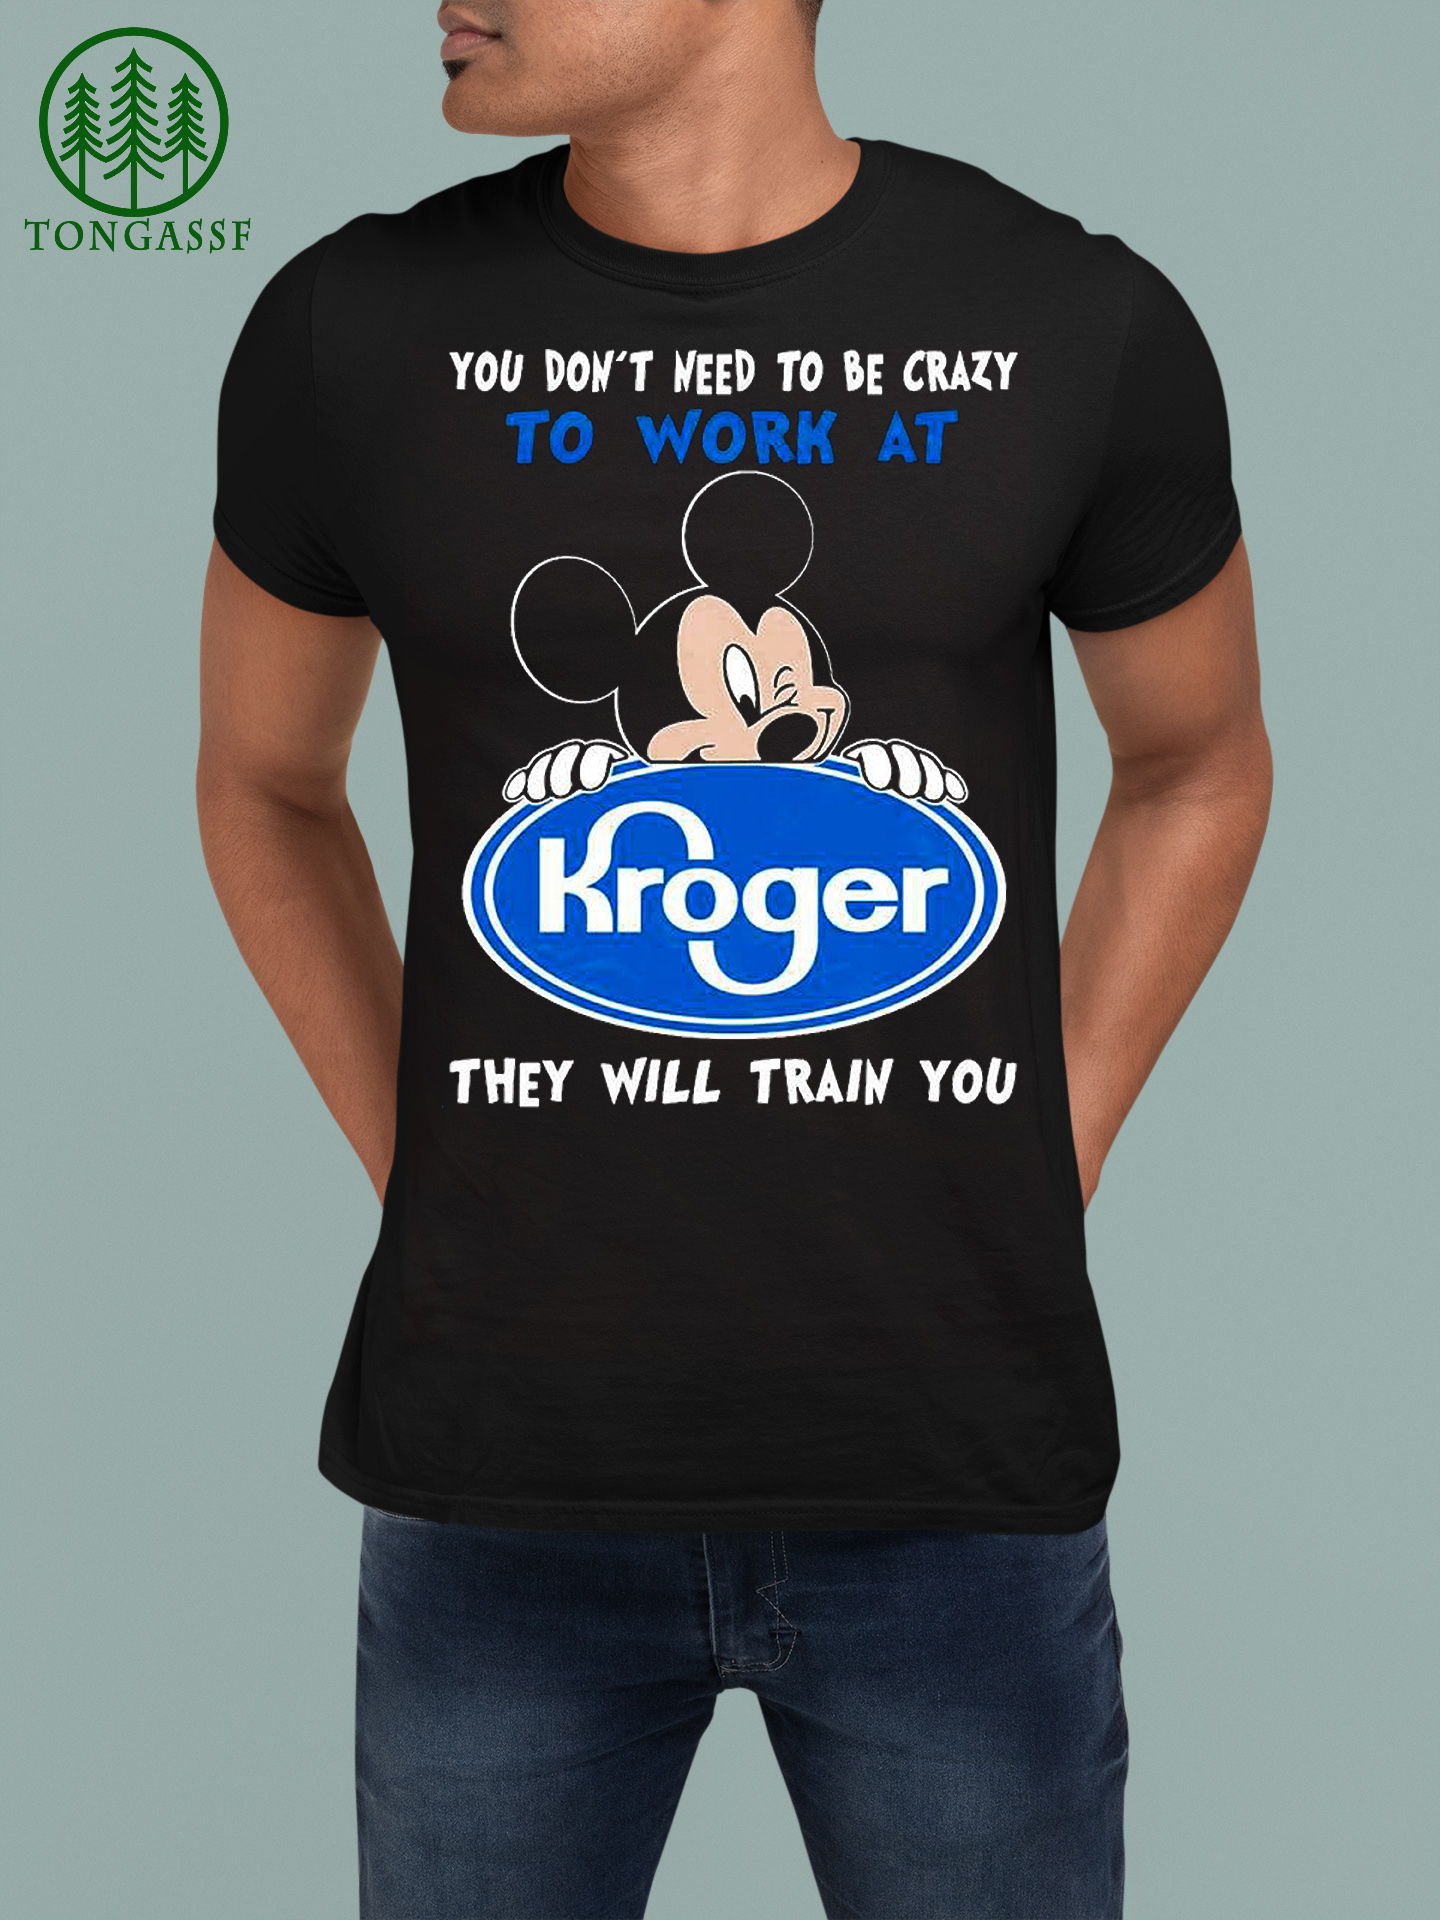 You dont need to be crazy to work at Mickey Mouse Kroger they will train you shirt (2)